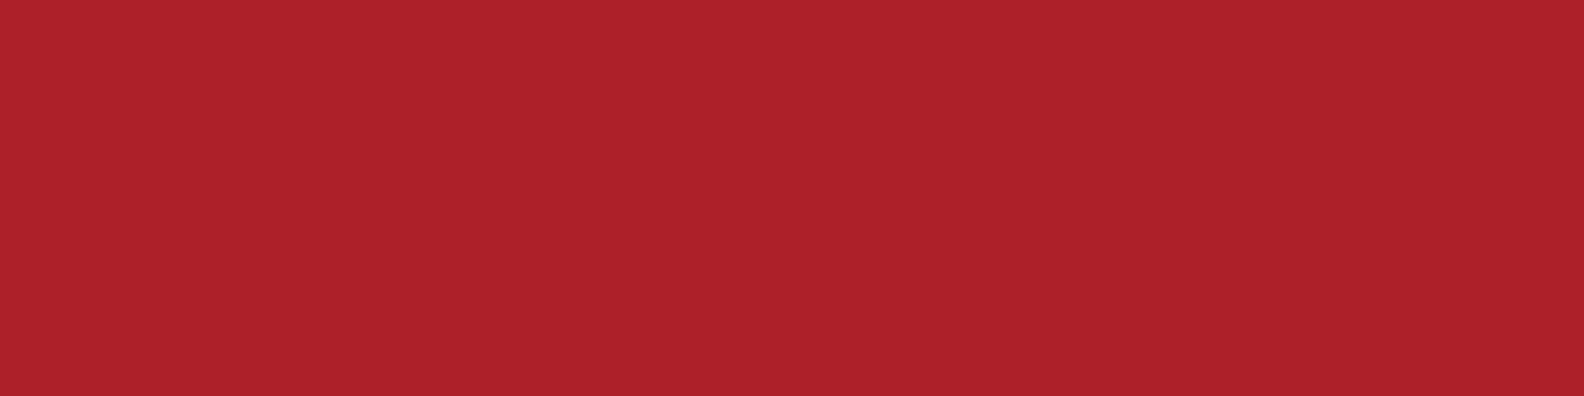 1584x396 Upsdell Red Solid Color Background